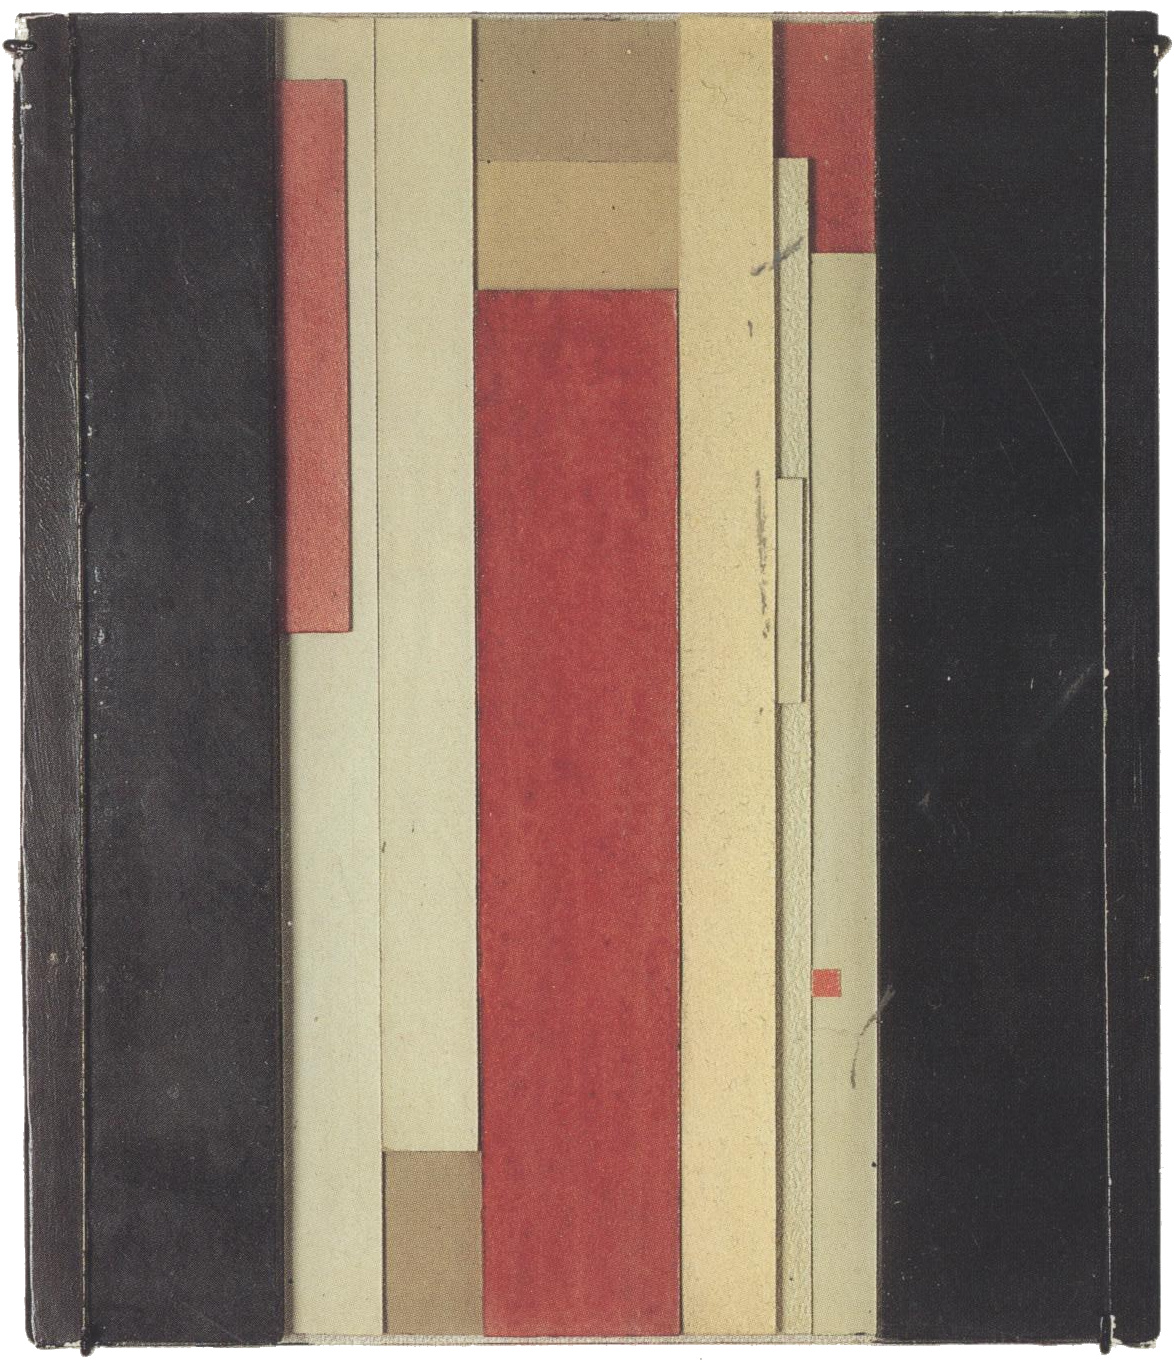 Il'ia Chashnik, the Seventh Dimension, Suprematist stripe relief 1925